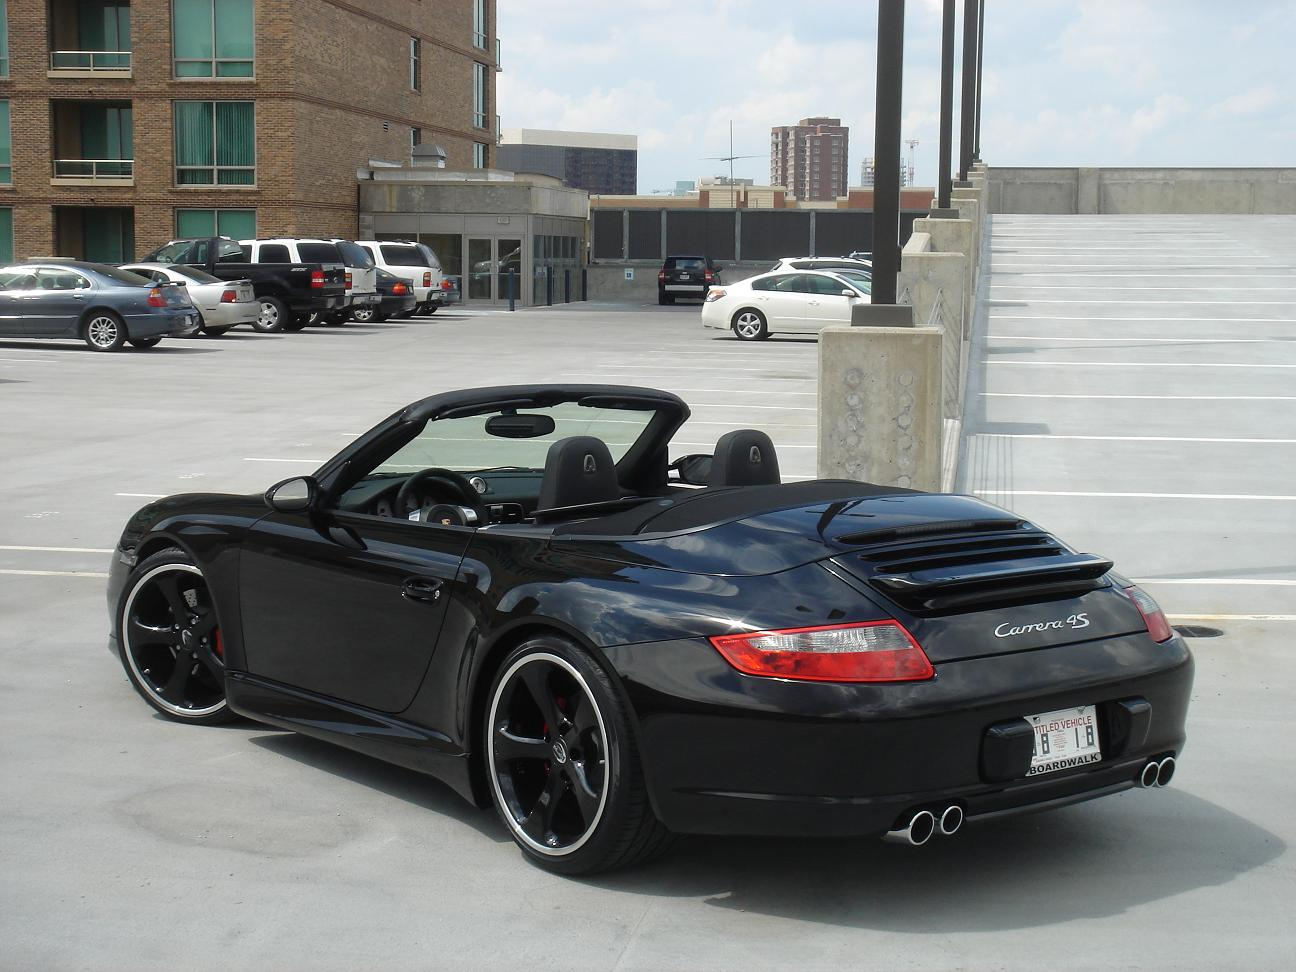 Our New Company Car 997 C4s Cab Triple Blk